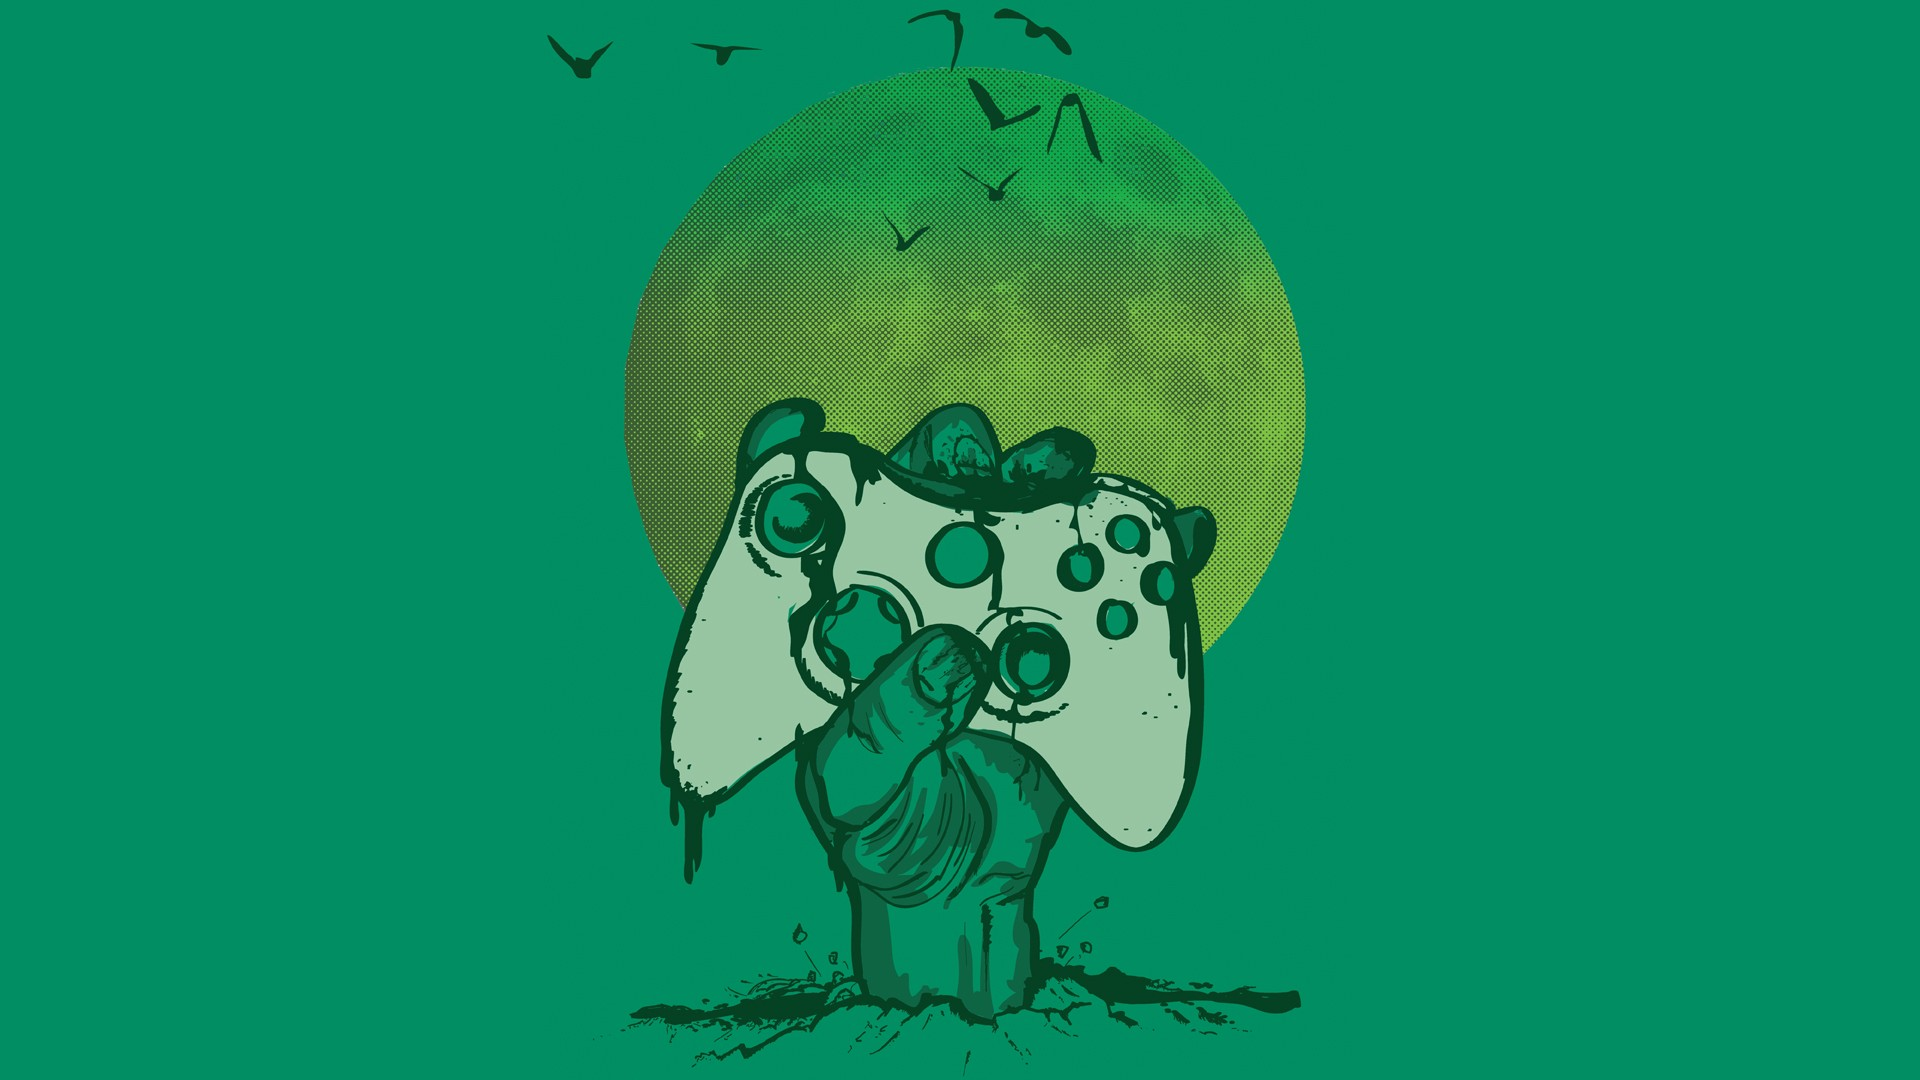 Scribble Drawing Xbox One : Xbox minimalism hd artist k wallpapers images